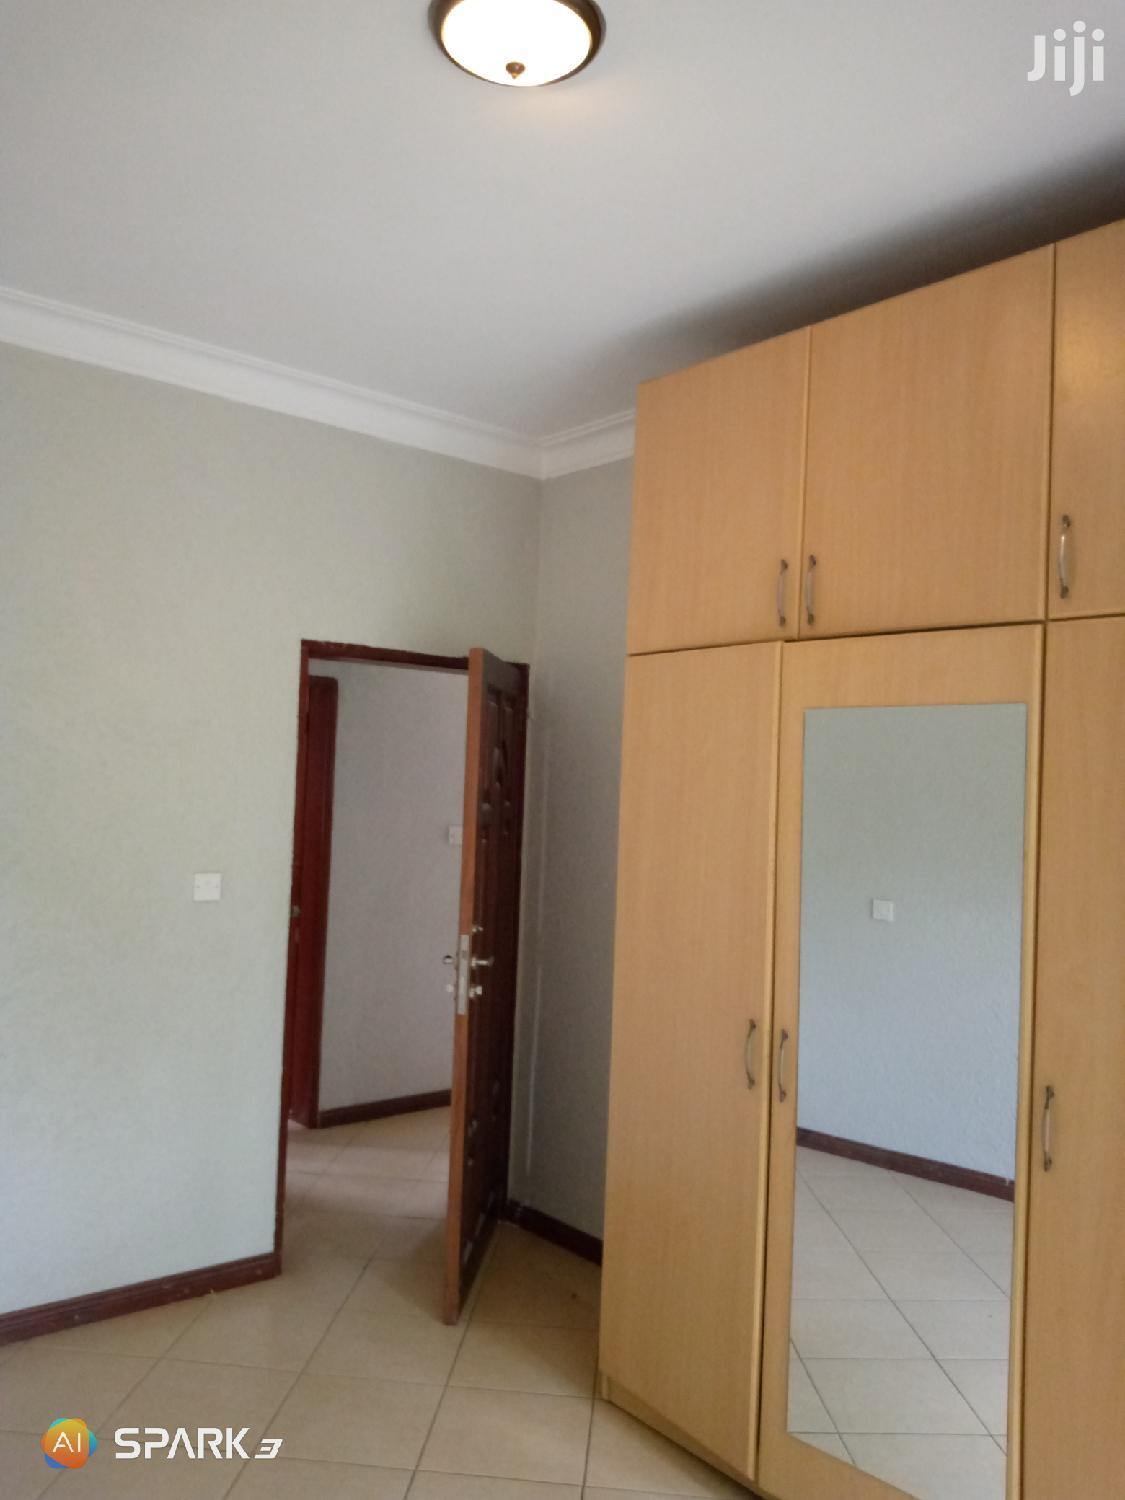 Executive Three Bedrooms Standalone House for Rent in Ntinda   Houses & Apartments For Rent for sale in Kampala, Central Region, Uganda